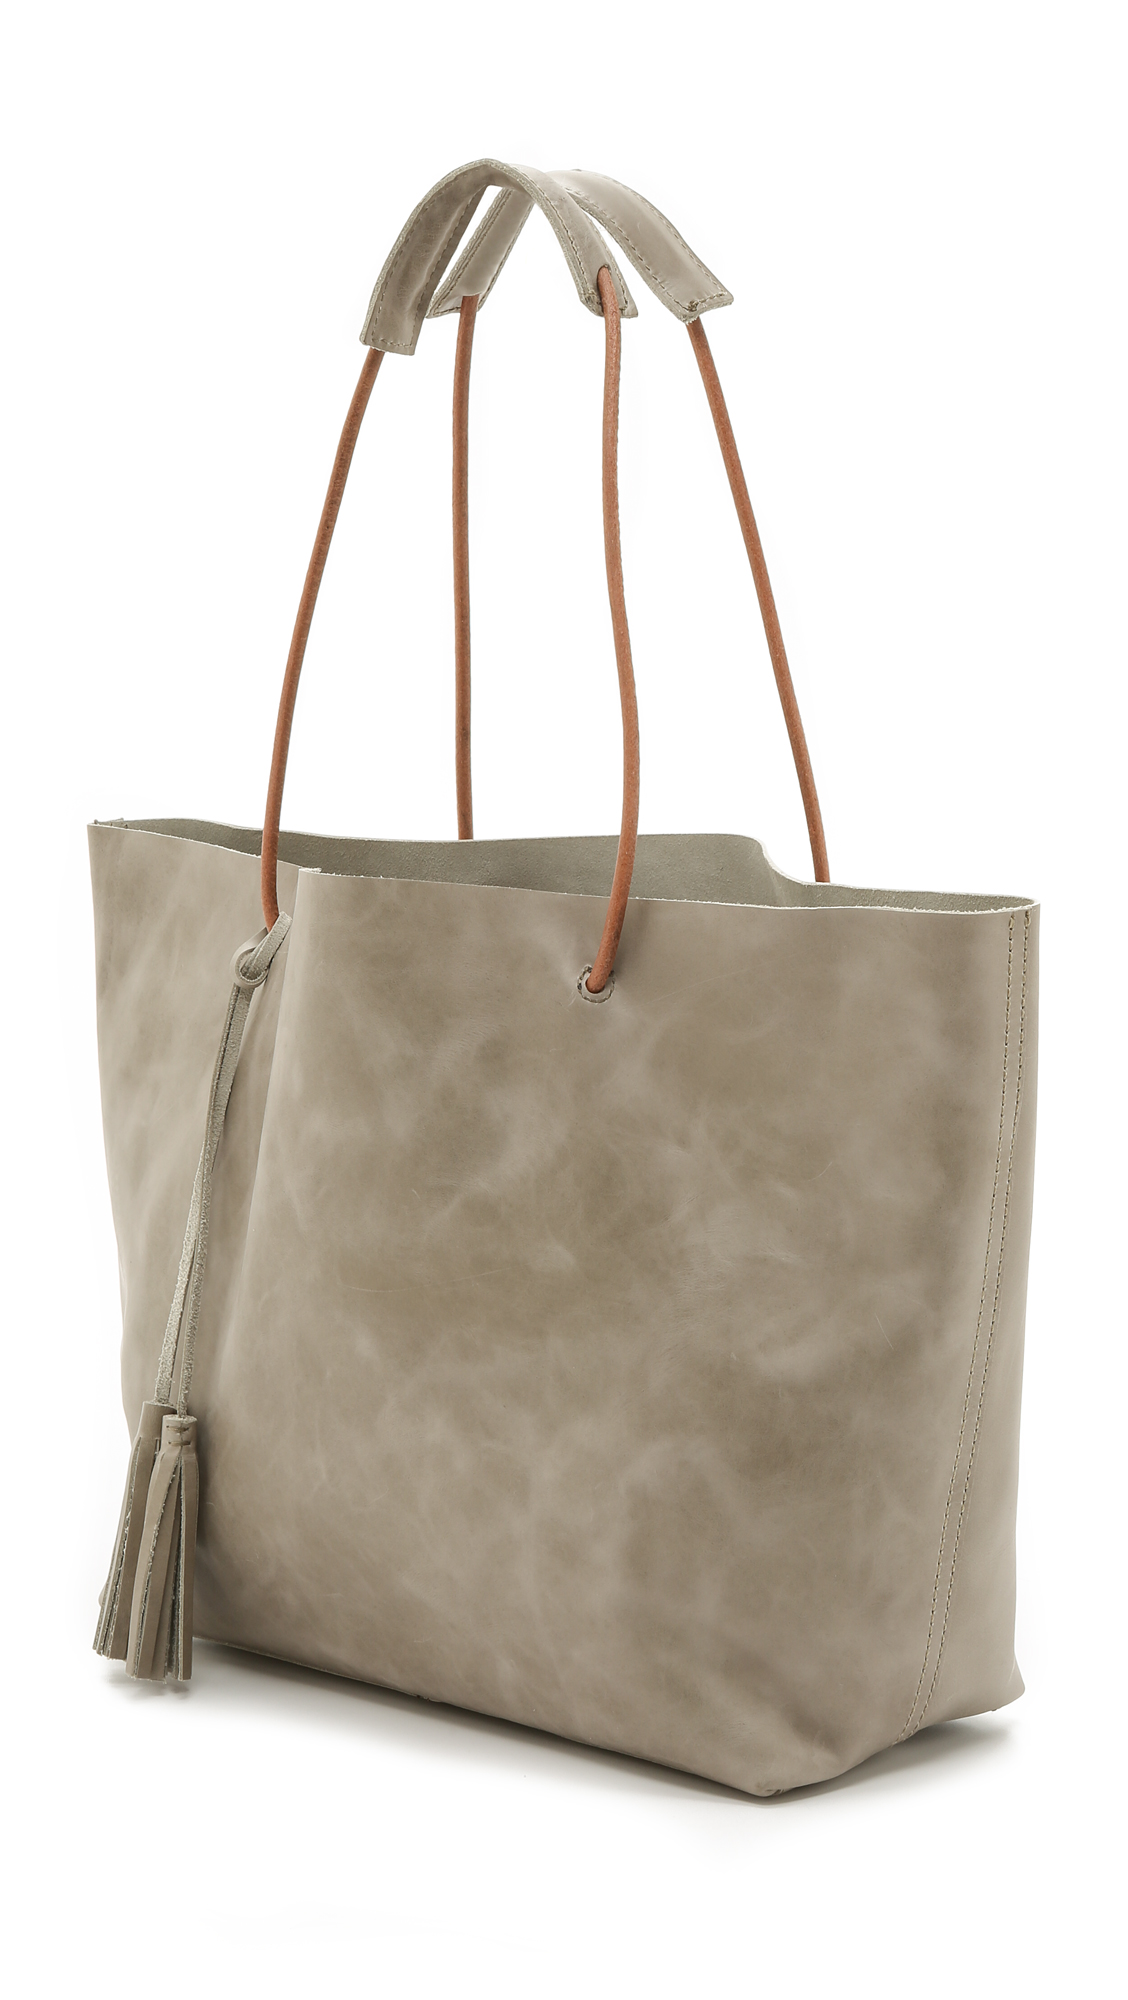 Monserat de lucca sancha east / west tote